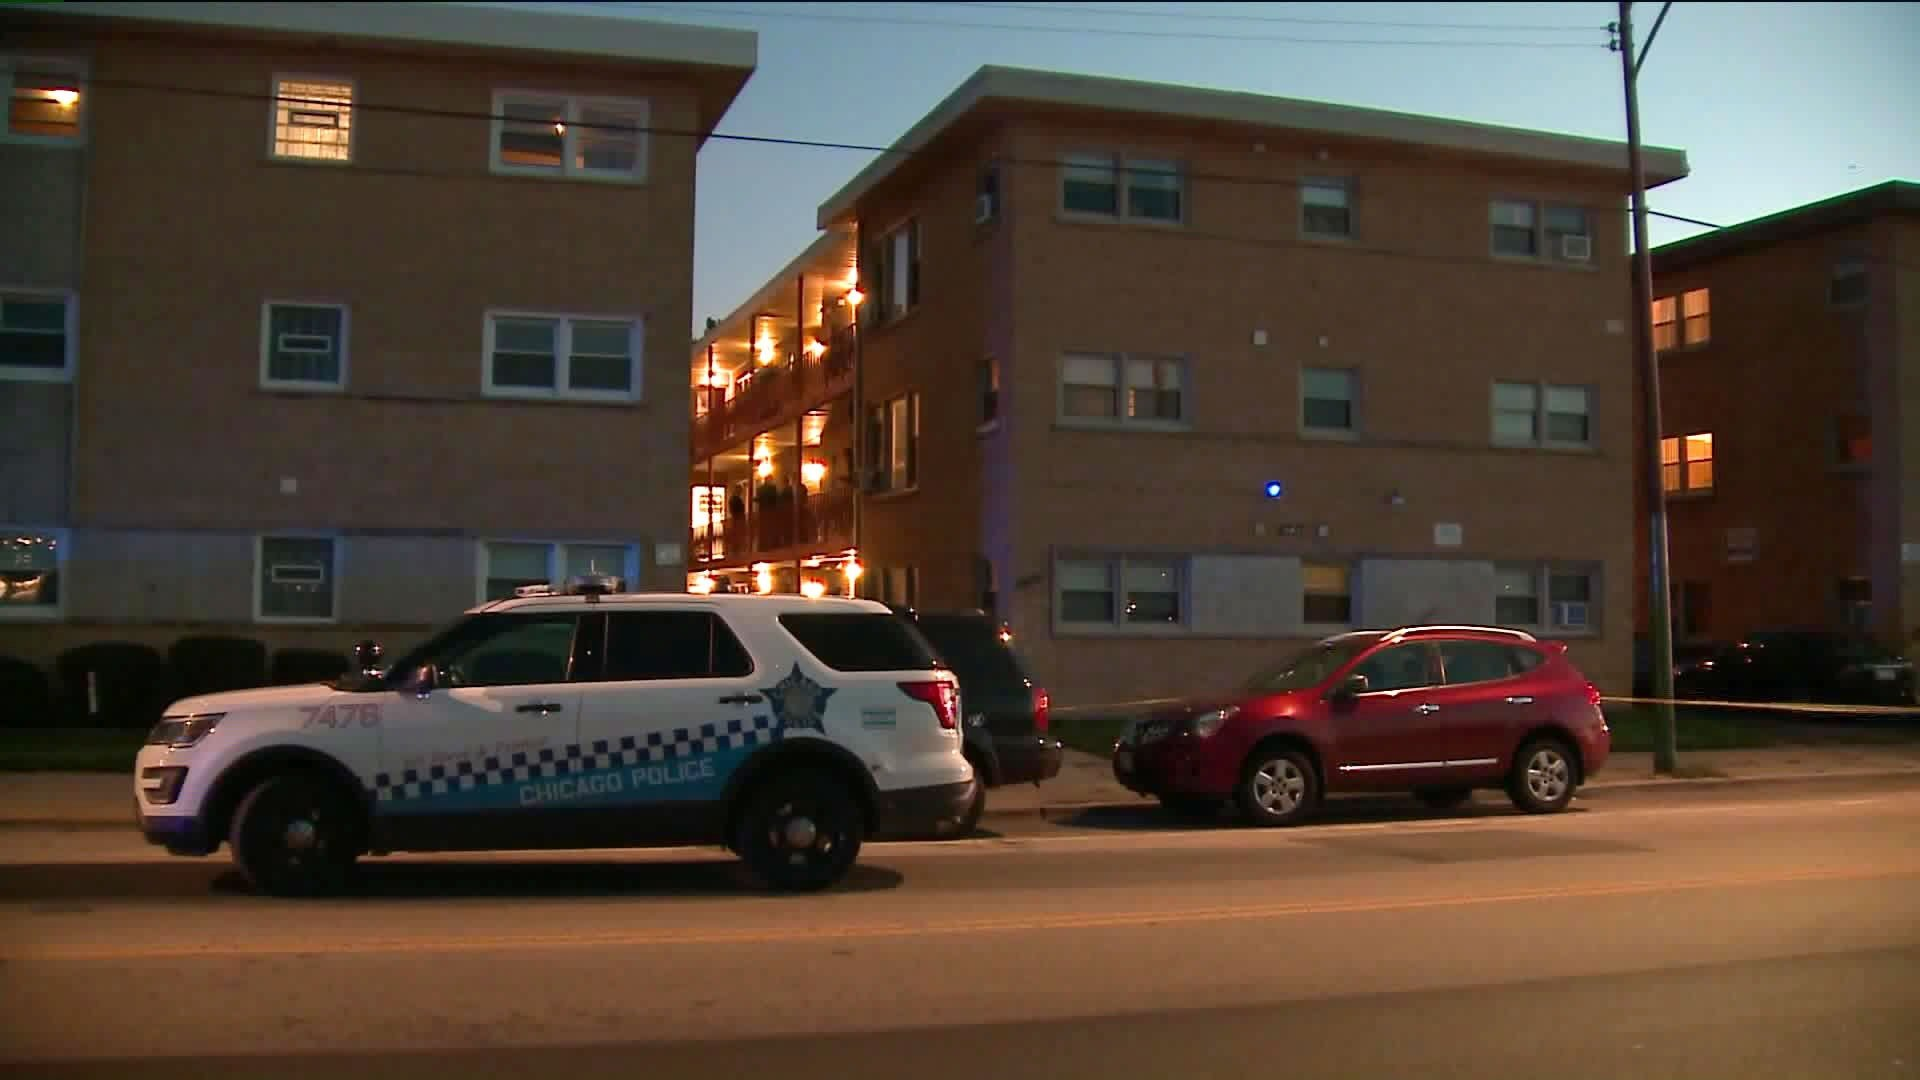 A neighbor kills 4 people eating dinner in a Chicago apartment, police say